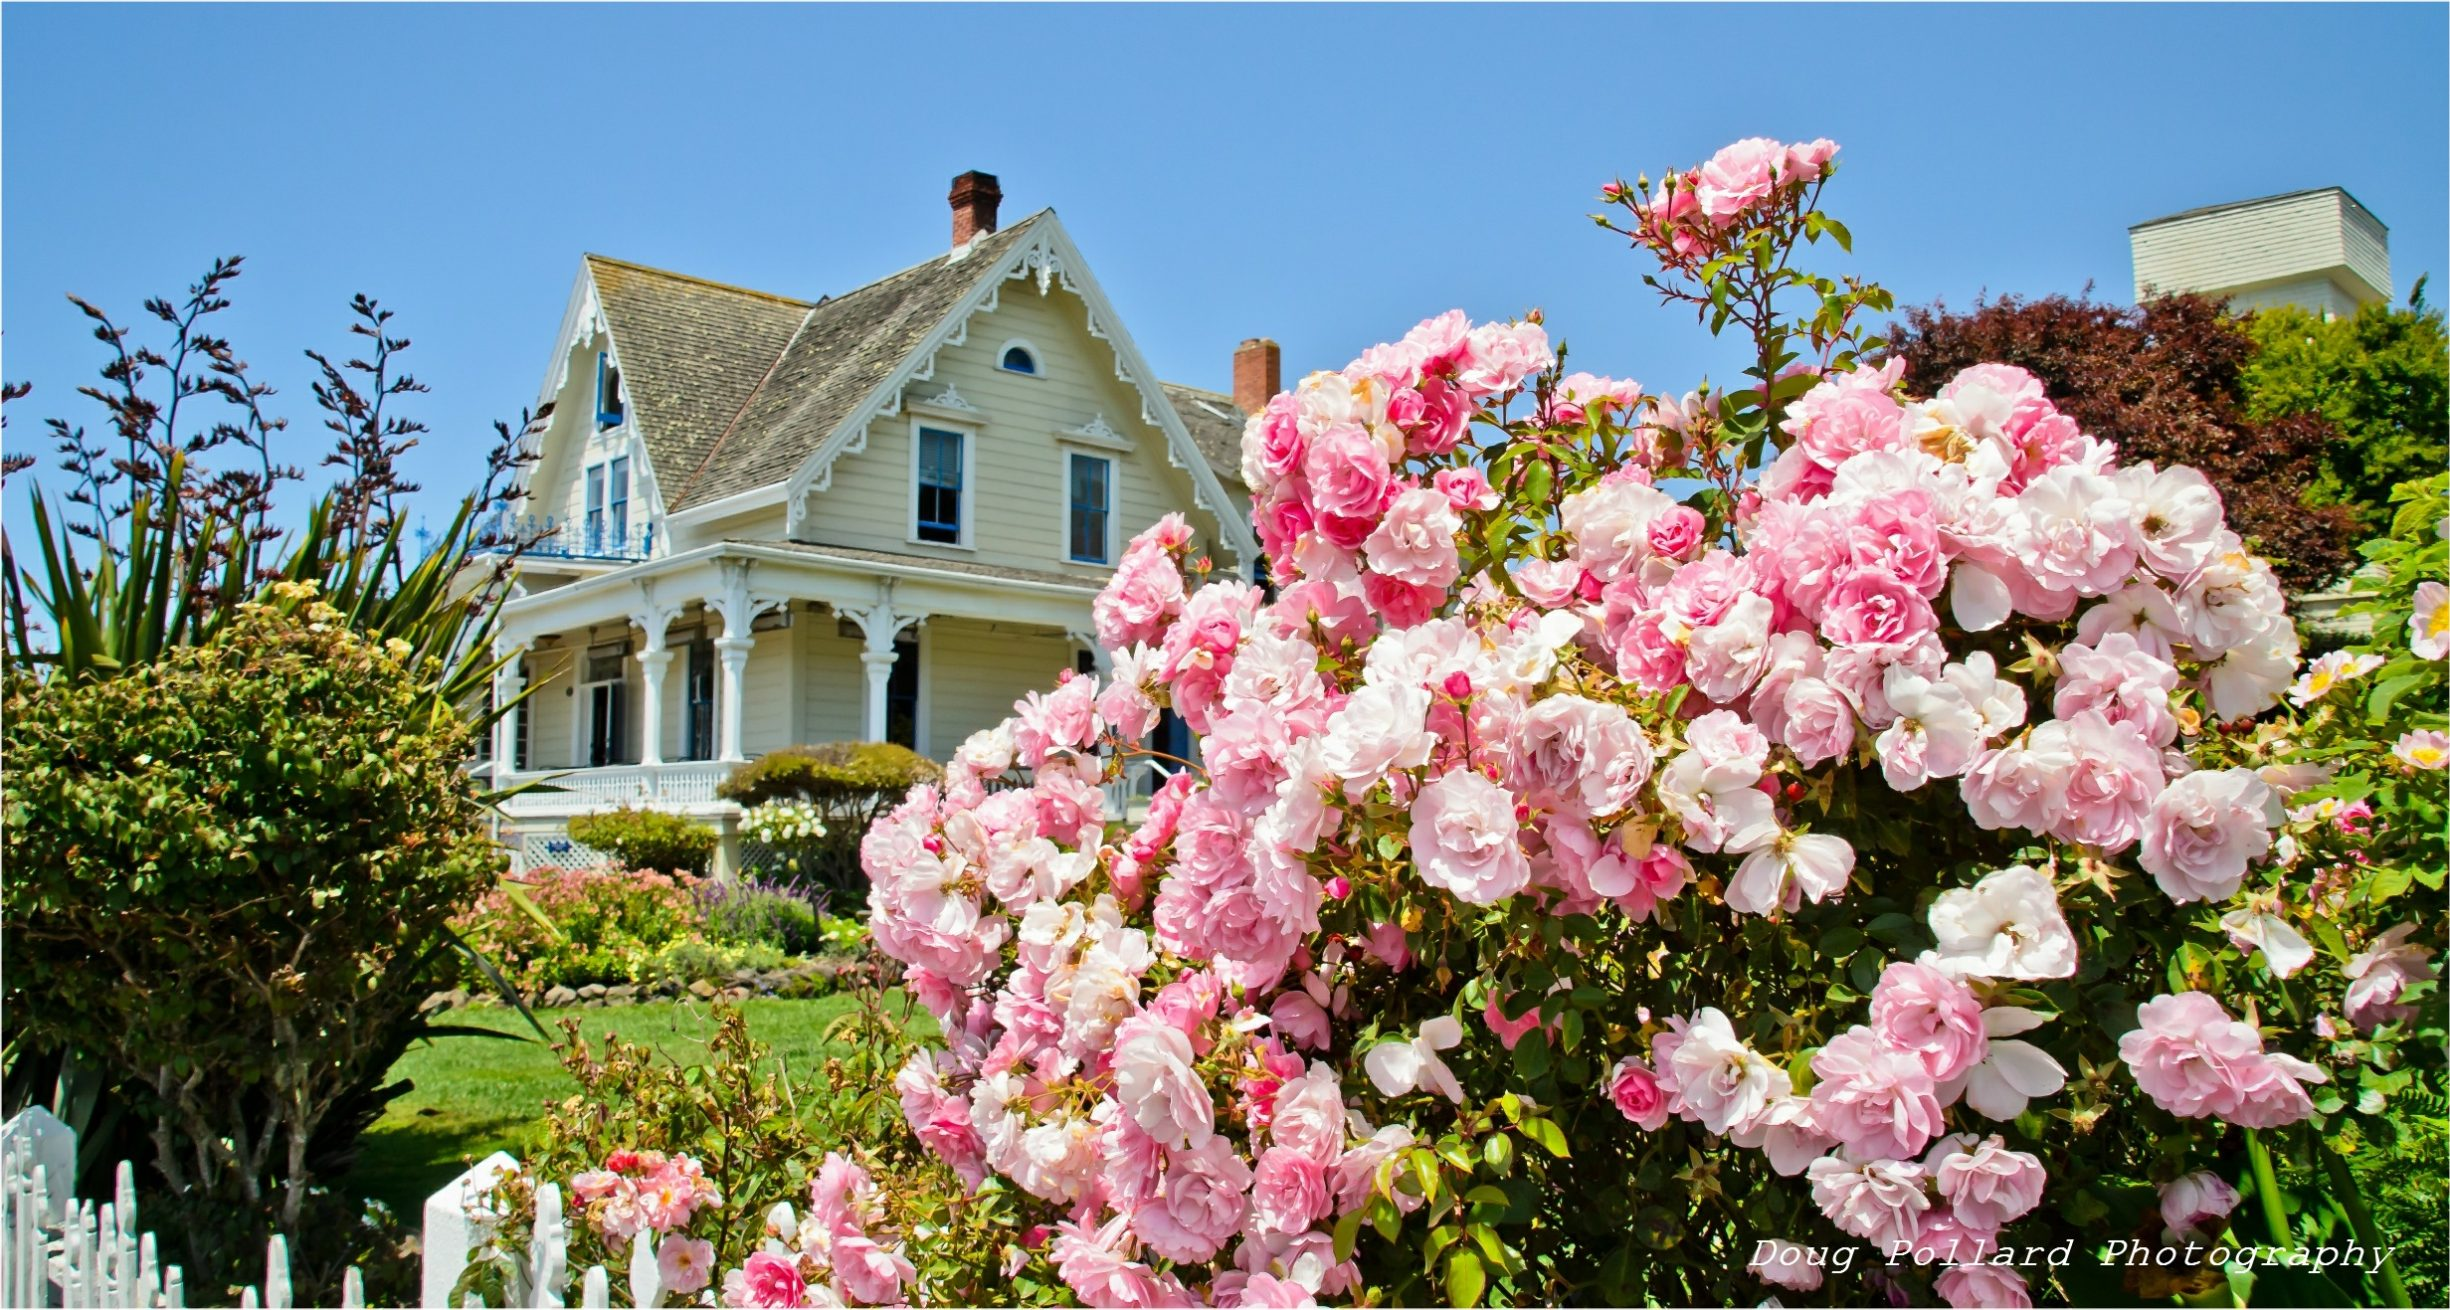 Pink roses in the front yard of the MacCallum House Inn, Mendocino, California.